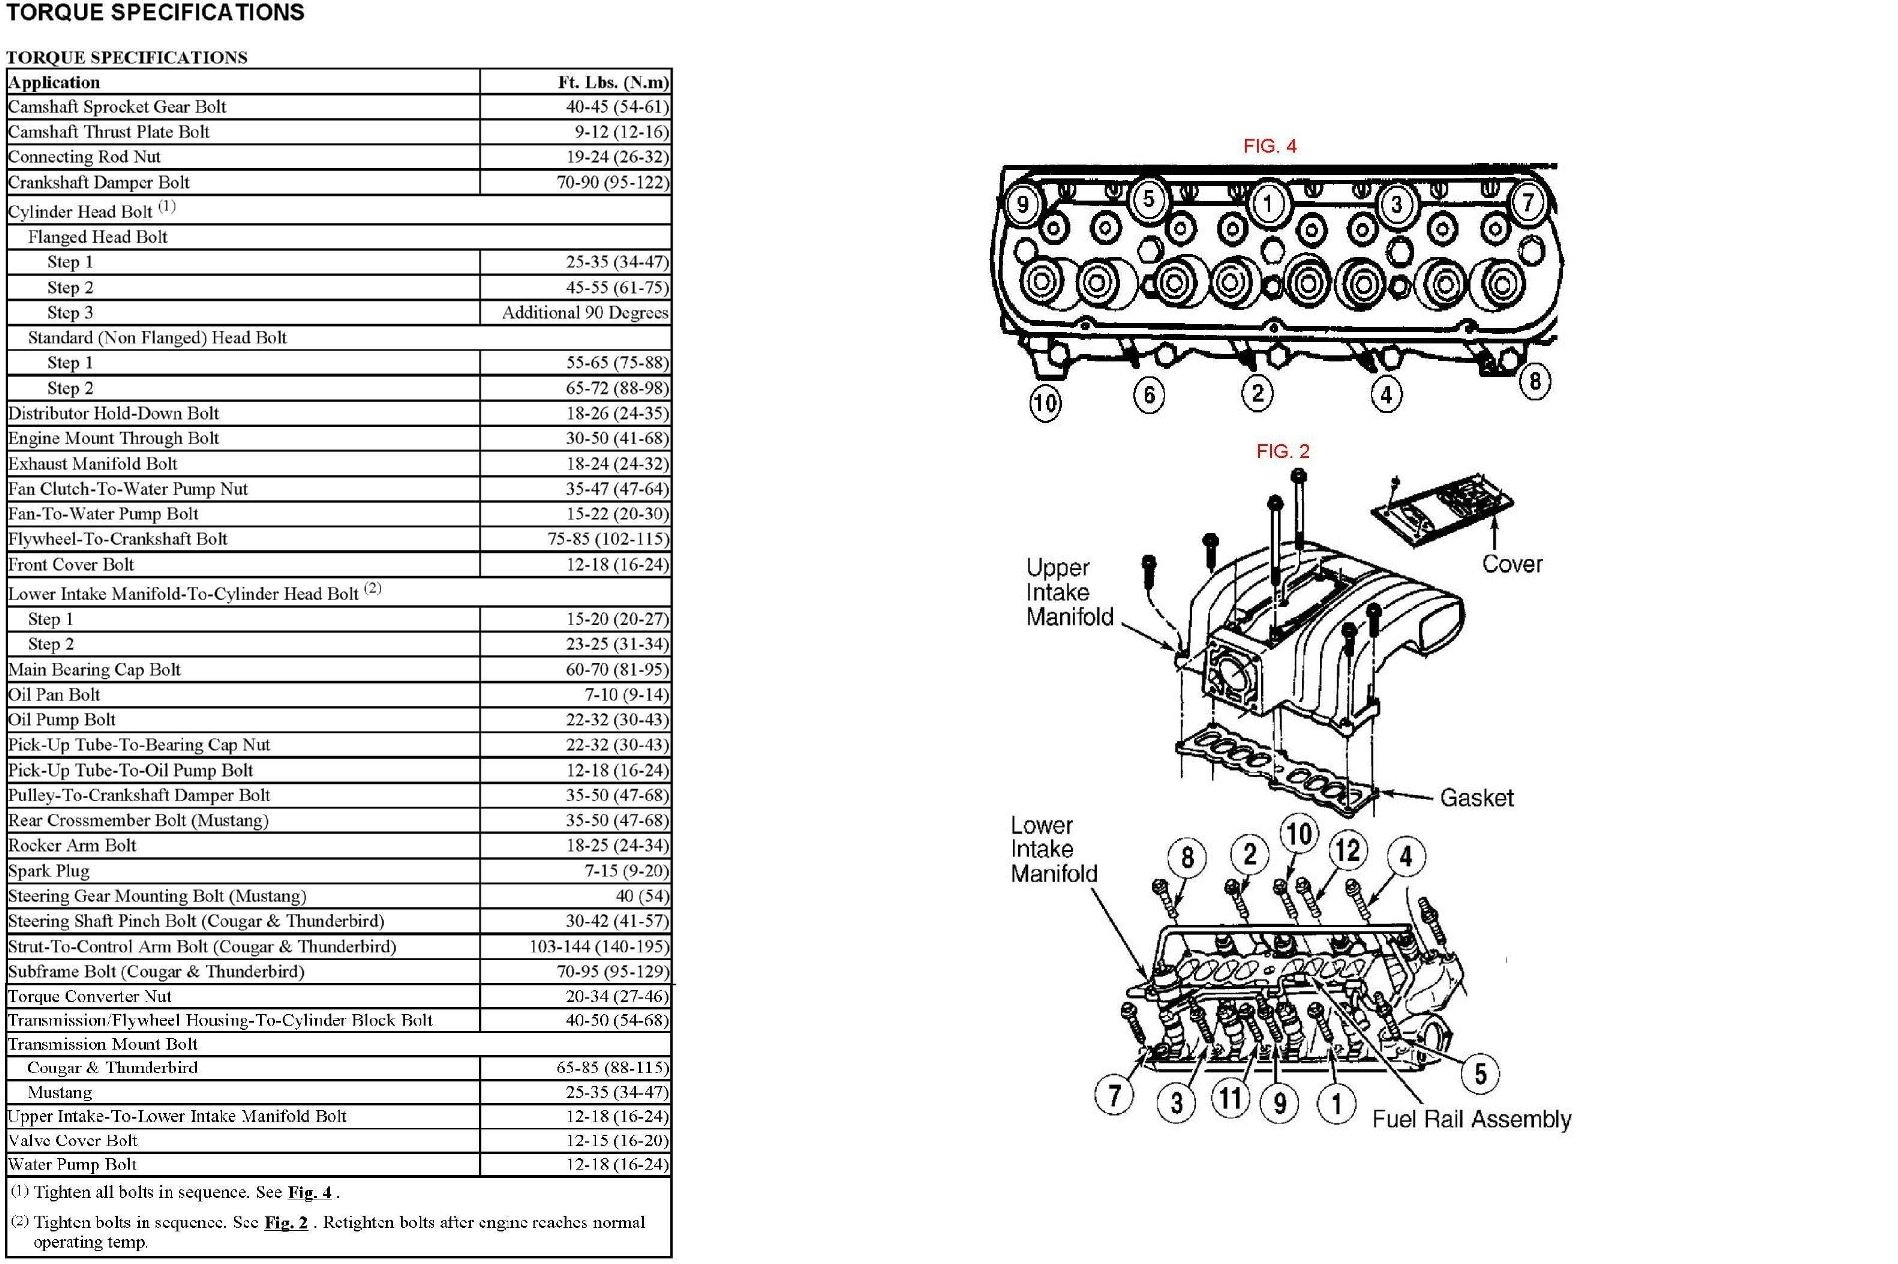 Mazda 6 2 3 2004 3 Specs And Images also 365334 Lower Intake Manifold Removal together with 1993 Toyota 3 0 V6 Engine Diagram in addition P 0900c1528004dcfb as well 3 0performance. on ford 4 0 firing order diagram